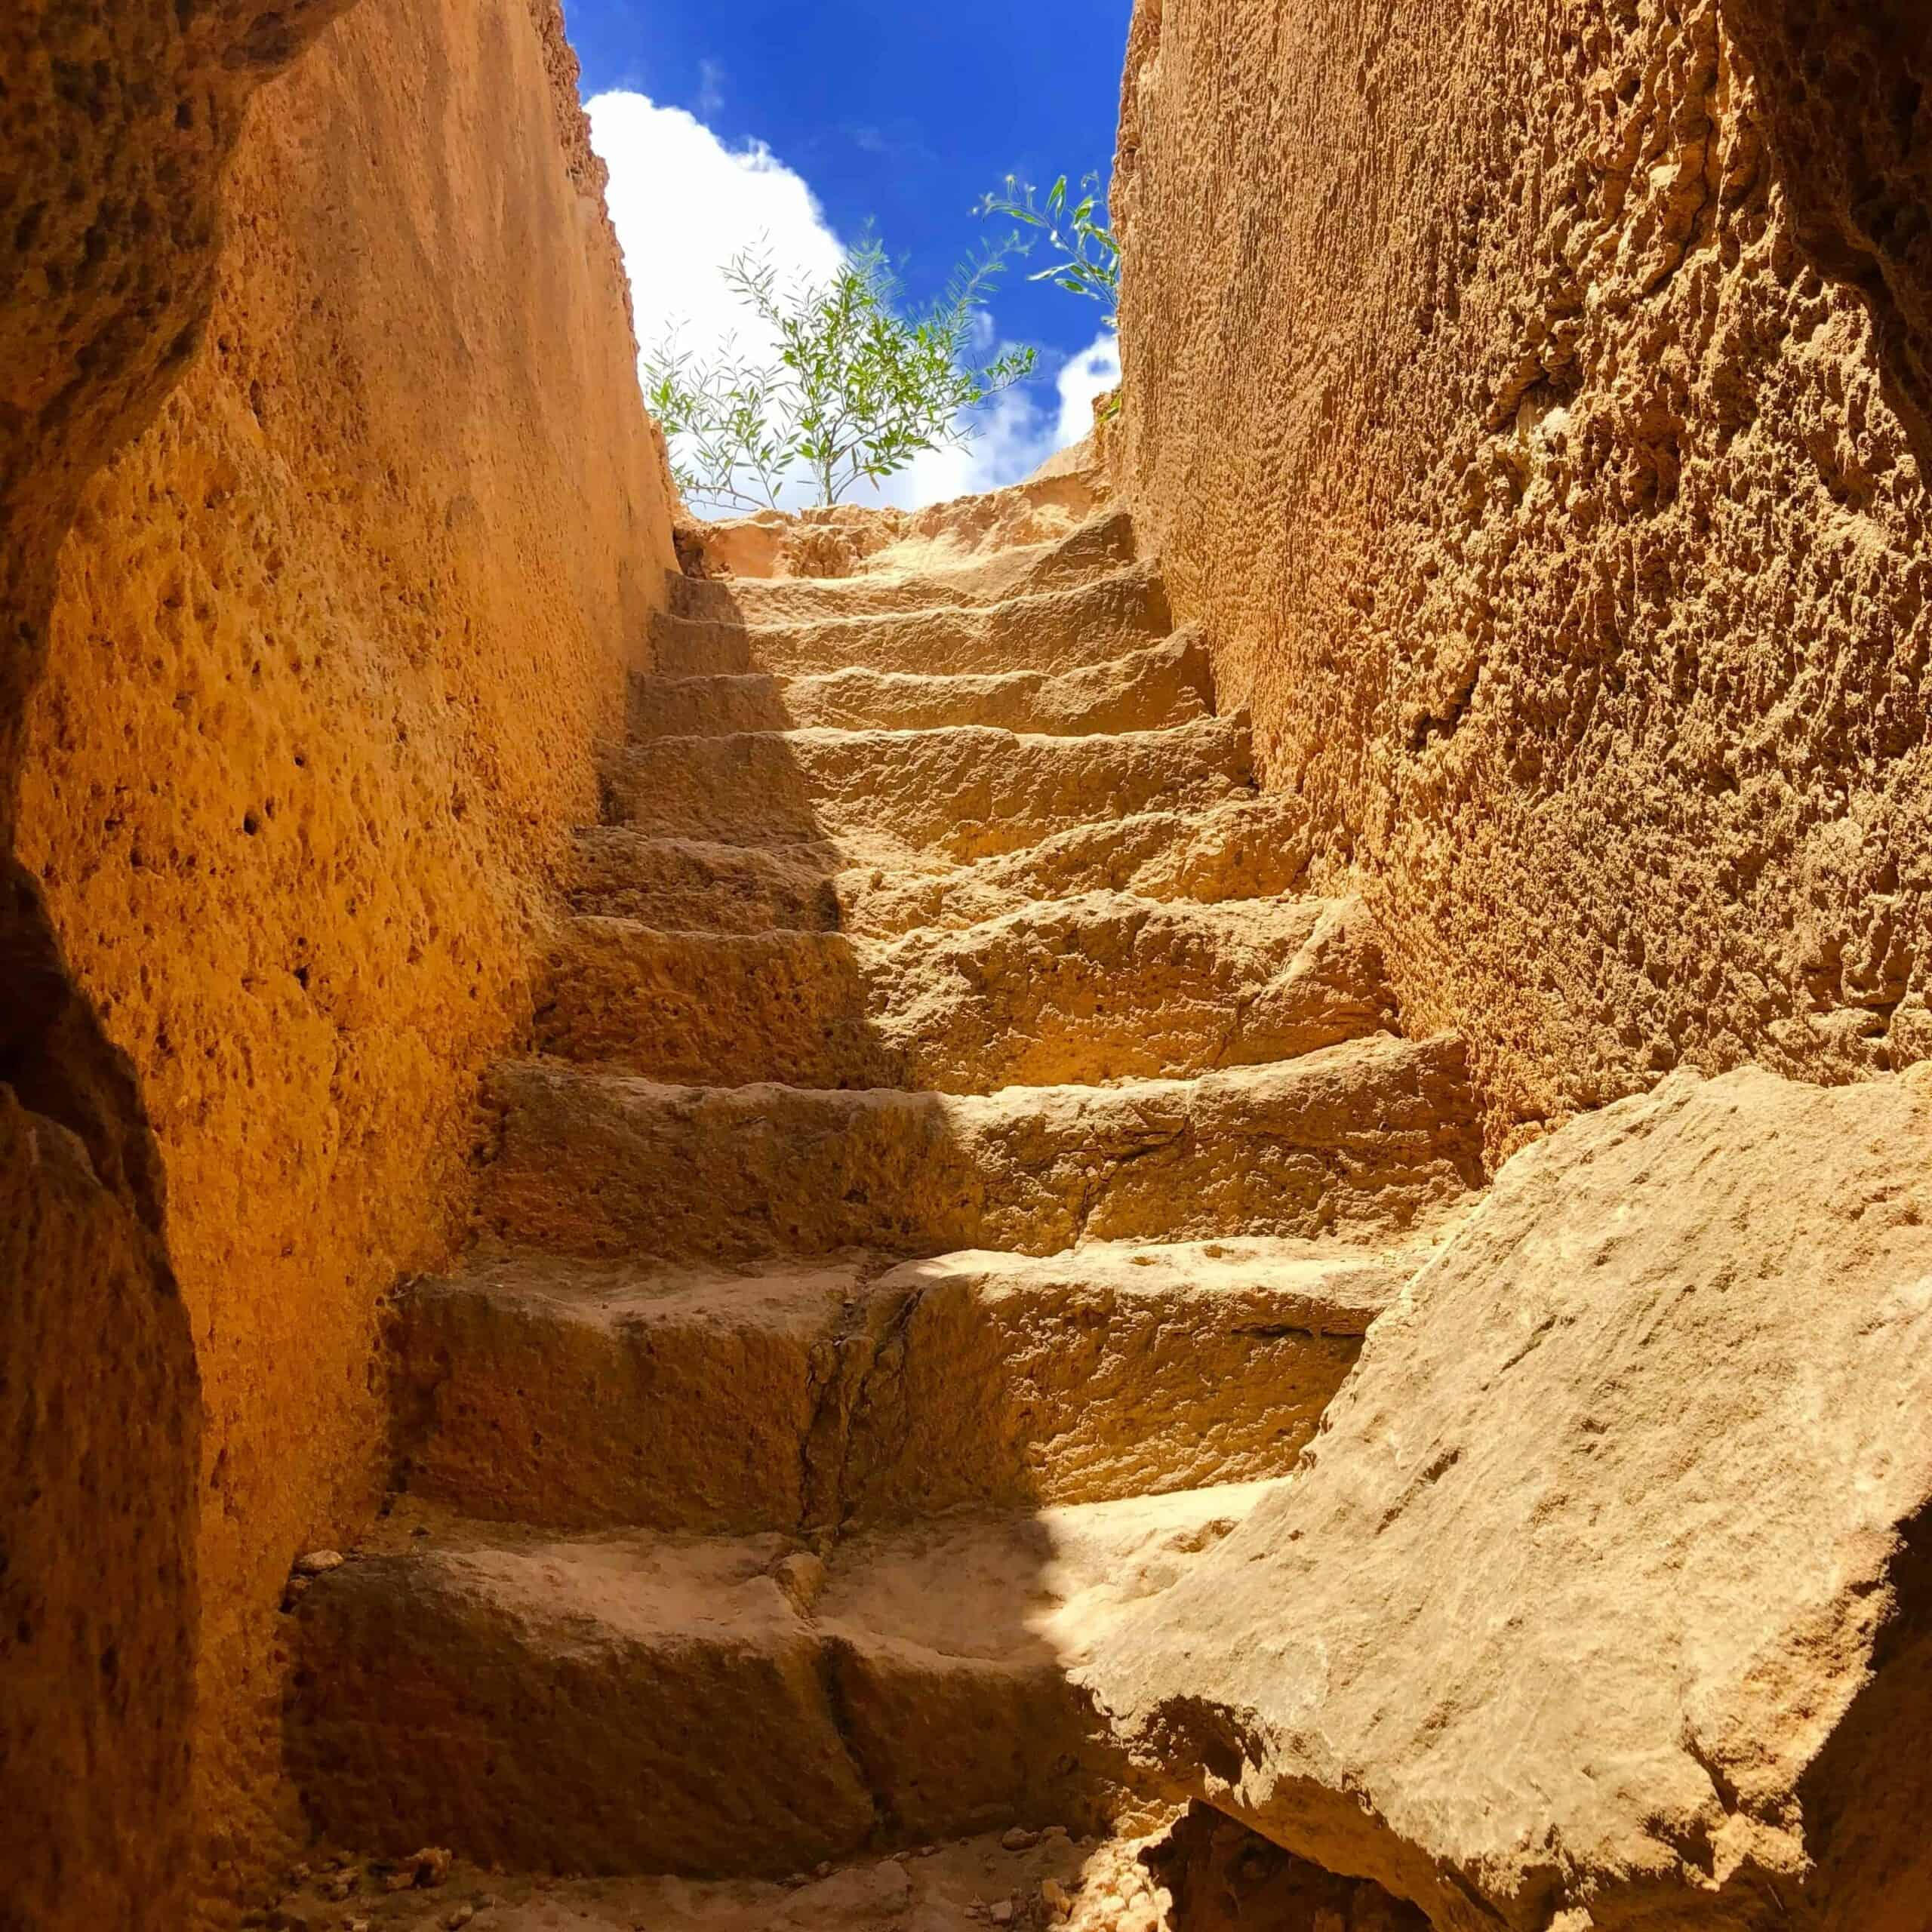 Looking up the stairs of a tomb.